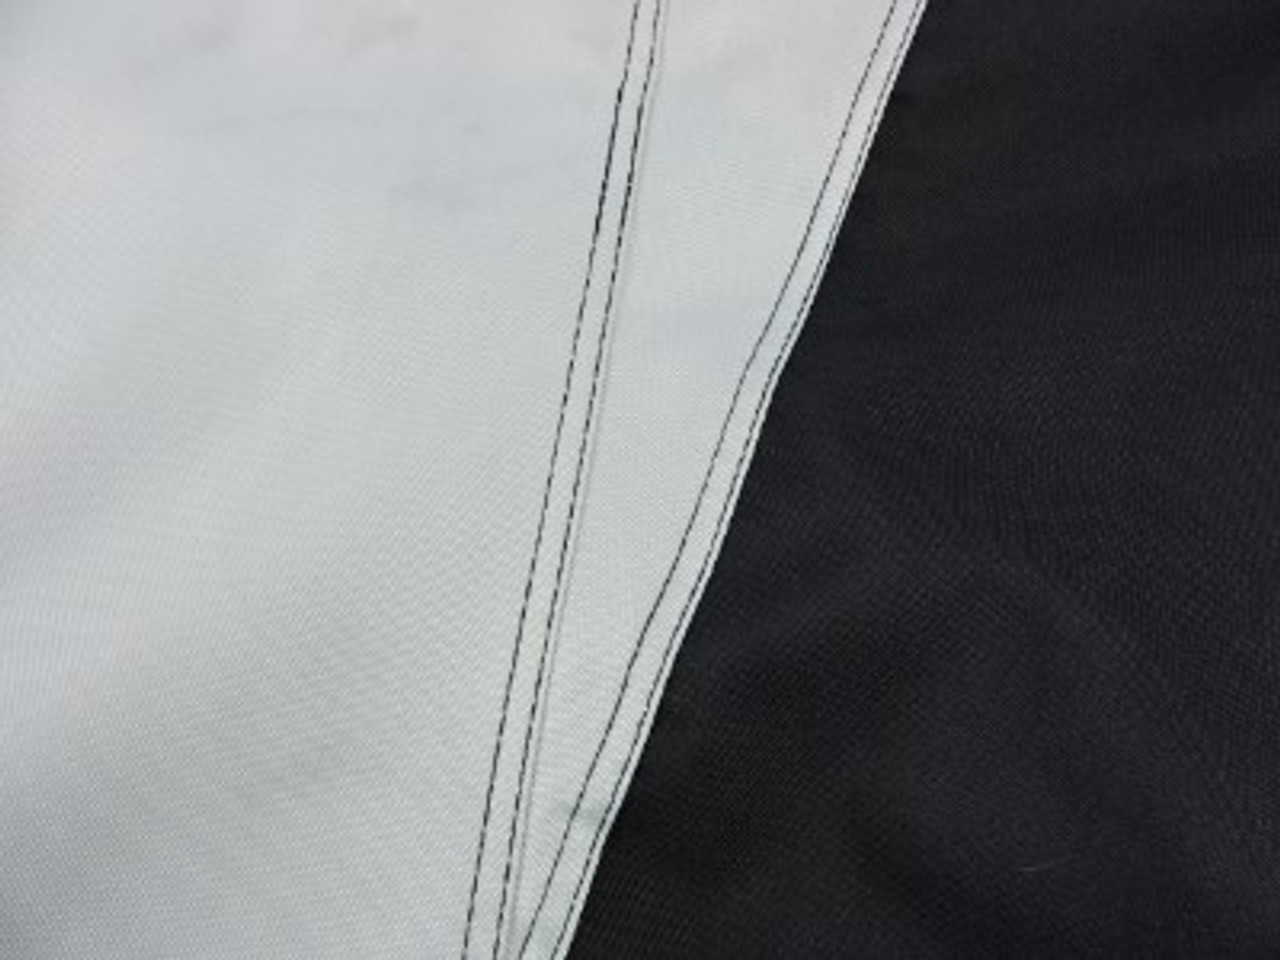 Nanook heavy duty 600D treated polyester with double stitched seams for long lasting durability